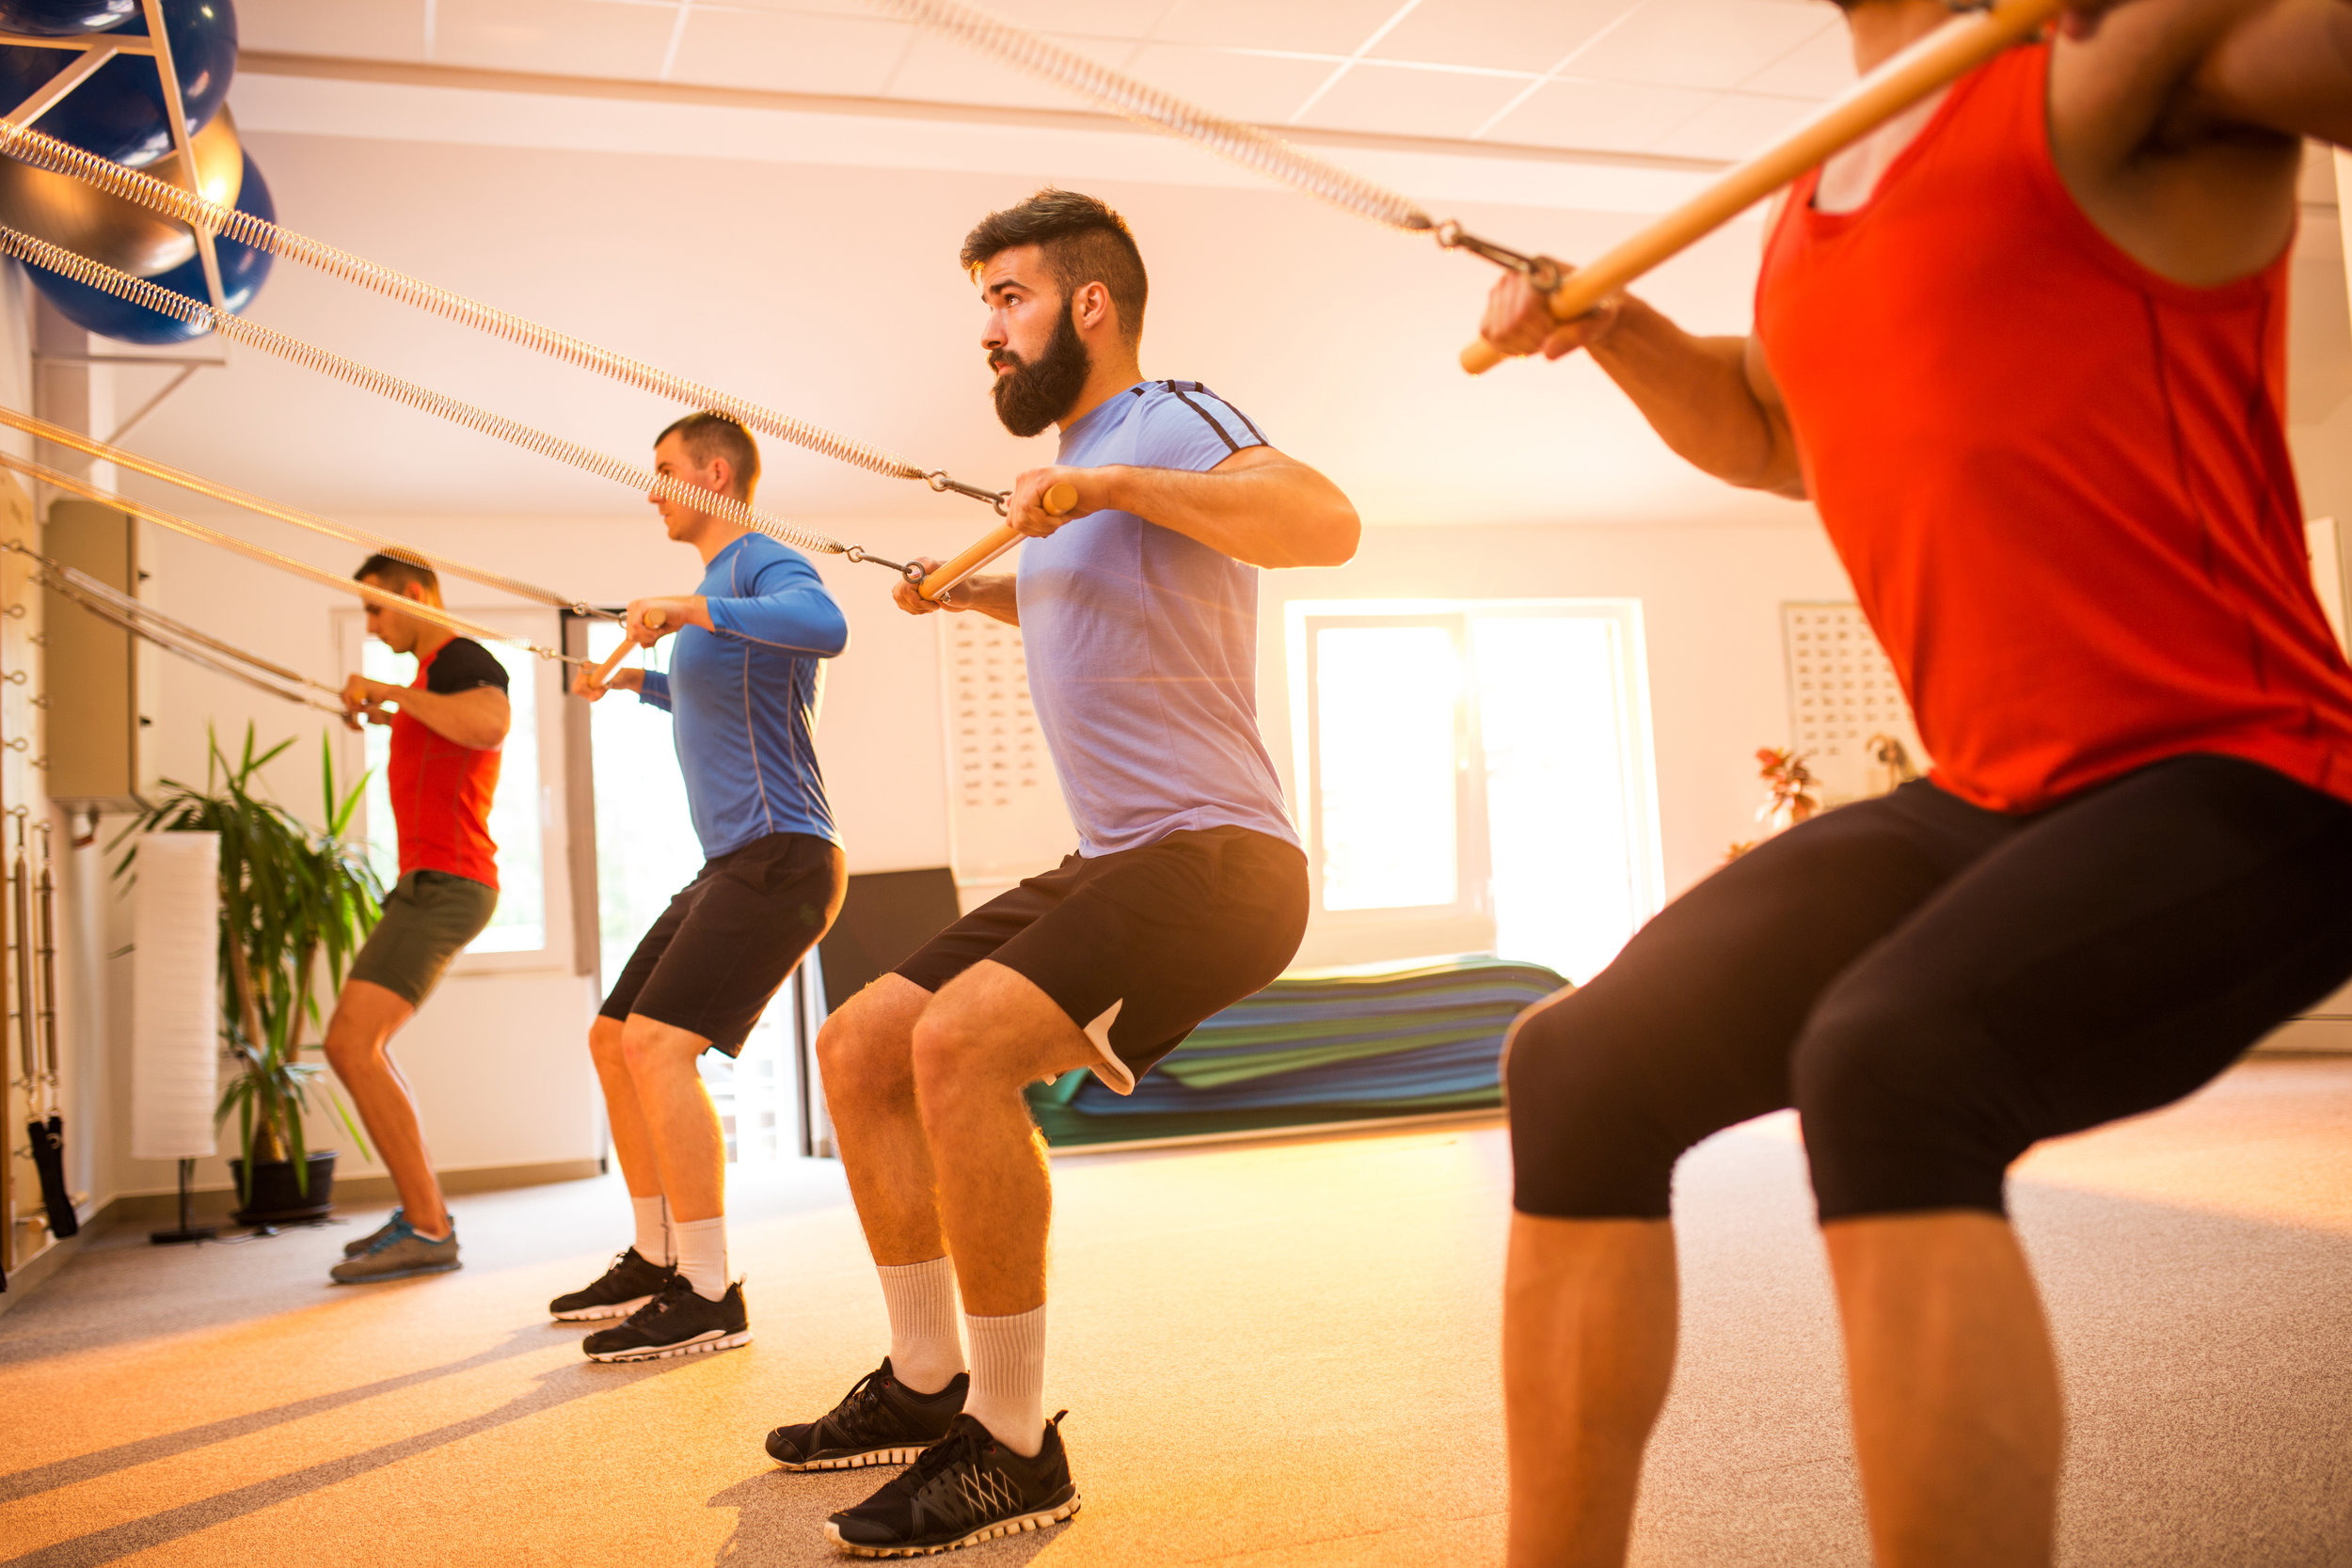 Group-of-sportsmen-exercising-on-Pilates-machines-in-health-club.-637765816_5760x3840.jpeg